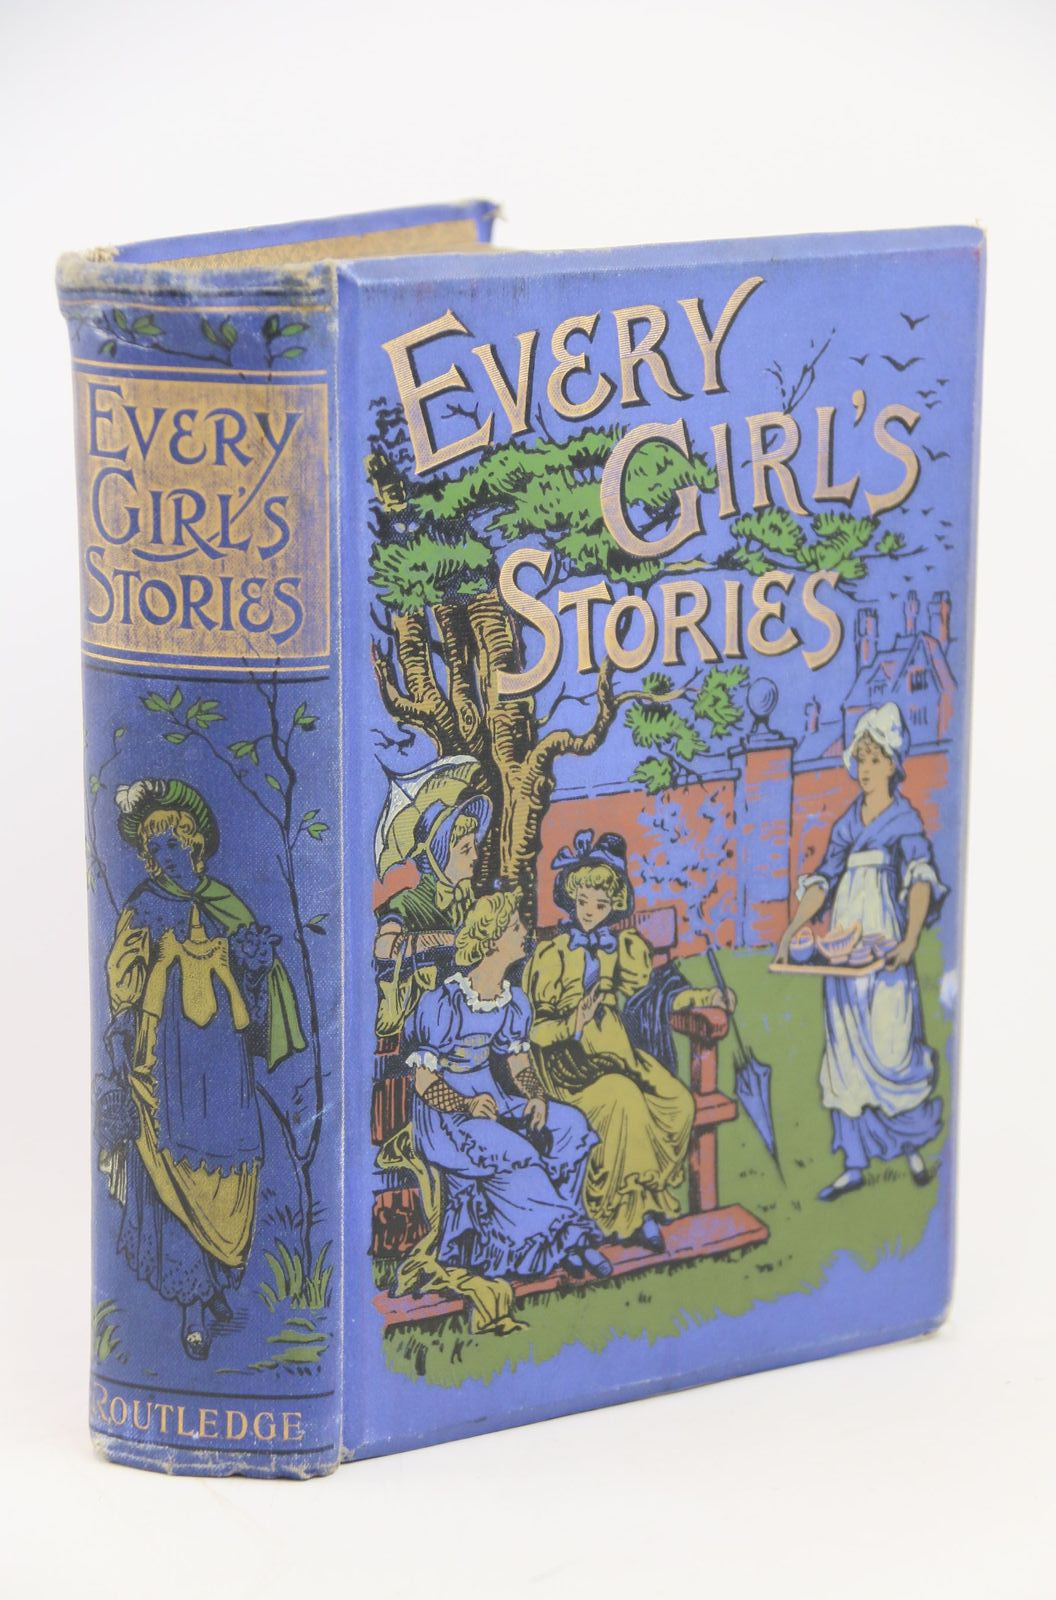 Photo of EVERY GIRL'S STORIES written by Aguilar, Grace Edgeworth, Maria Knatchbull-Hugessen, E.H. et al, illustrated by Greenaway, Kate et al., published by George Routledge & Sons Ltd. (STOCK CODE: 1317889)  for sale by Stella & Rose's Books